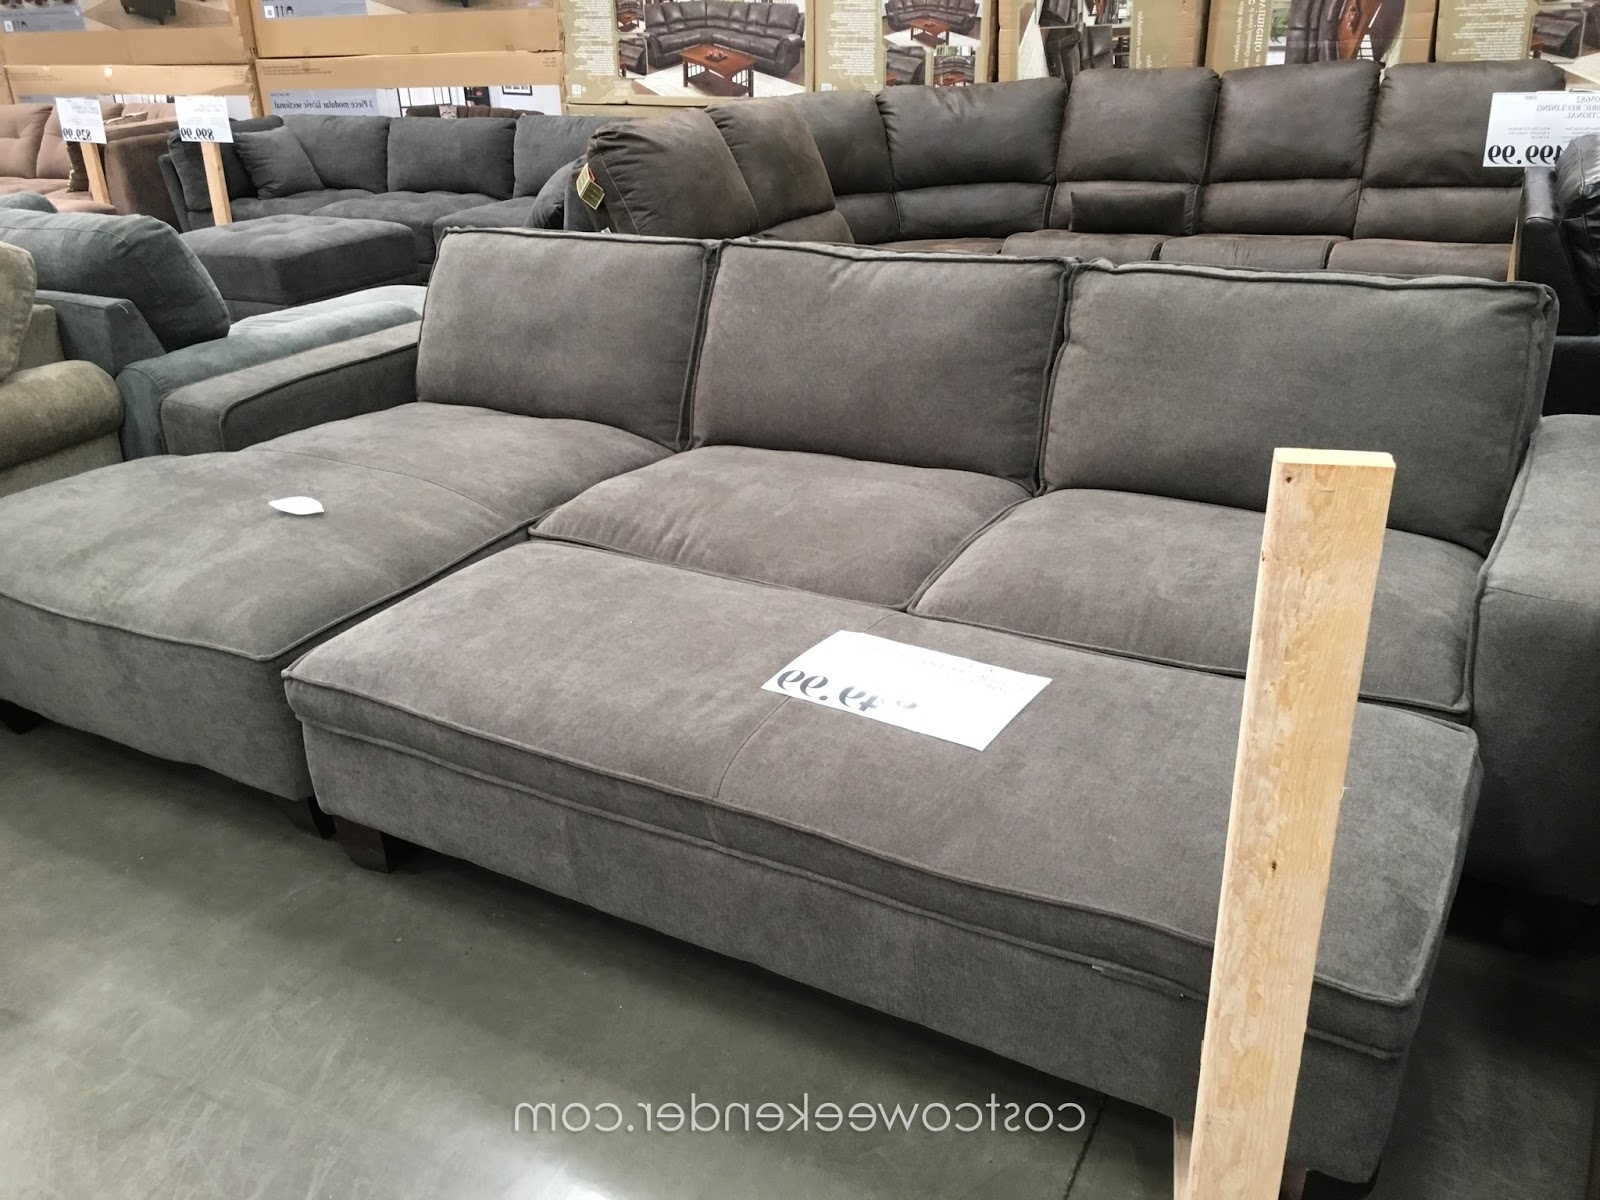 Most Recent Sectionals With Chaise And Ottoman Intended For Sectional Sofa Design: Costco Sectional Sofas Best Ever Leather (View 6 of 20)